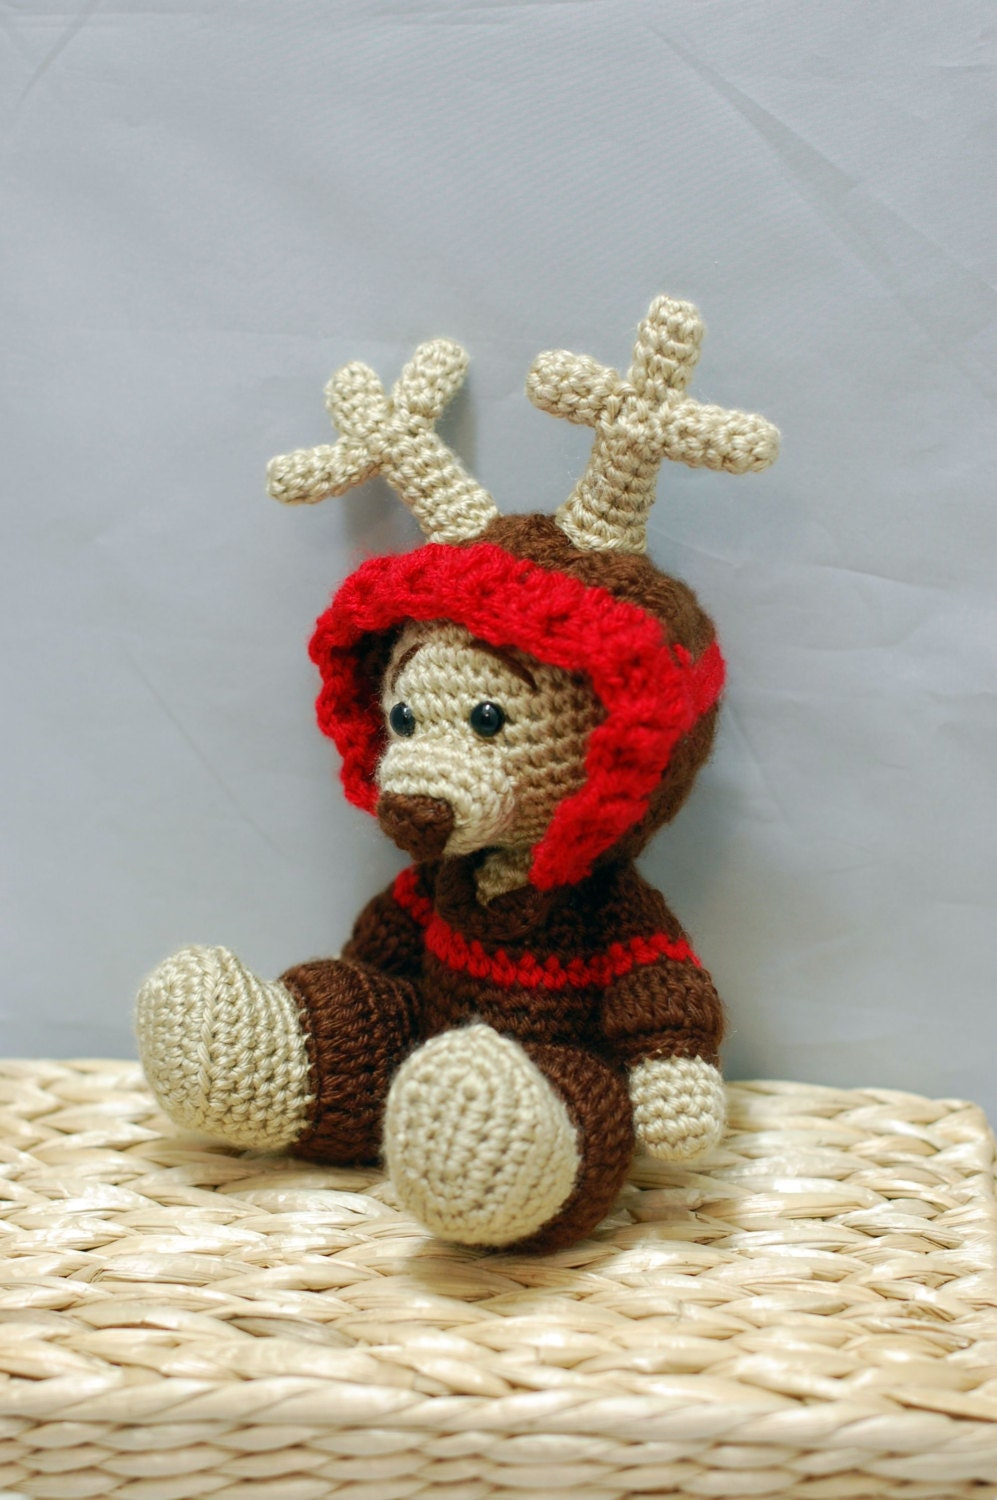 Amigurumi Teddy Bear in a Deer Xmas Costume